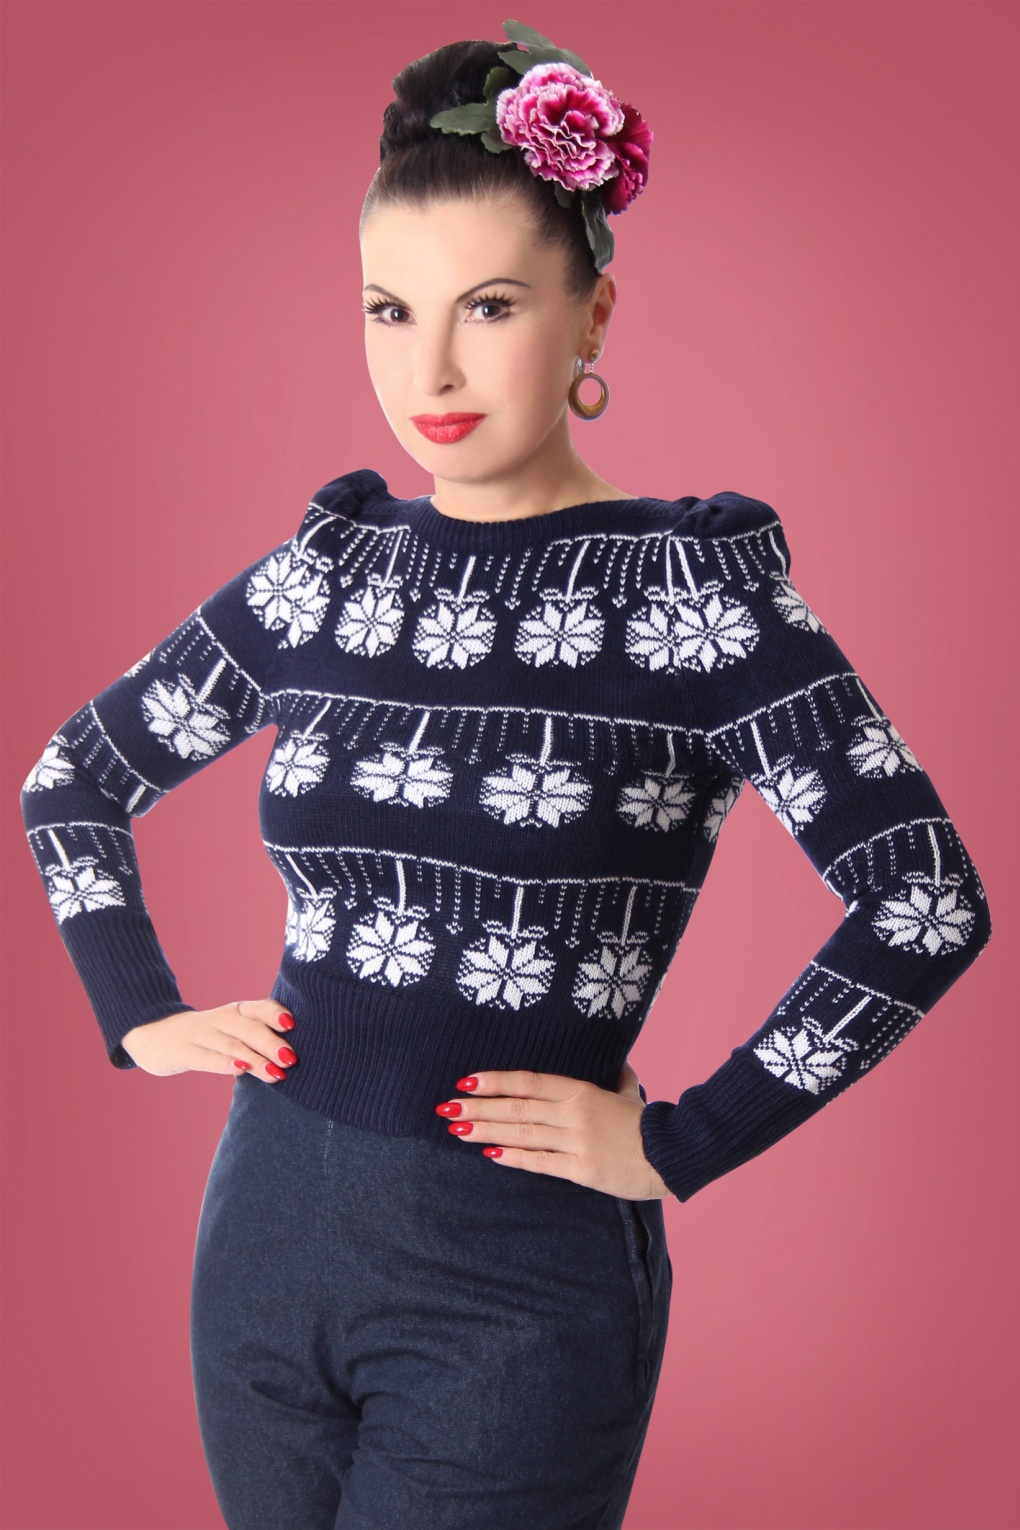 Vintage Sweaters: Cable Knit, Fair Isle Cardigans & Sweaters 50s Melika Jumper in Marine and White £34.91 AT vintagedancer.com